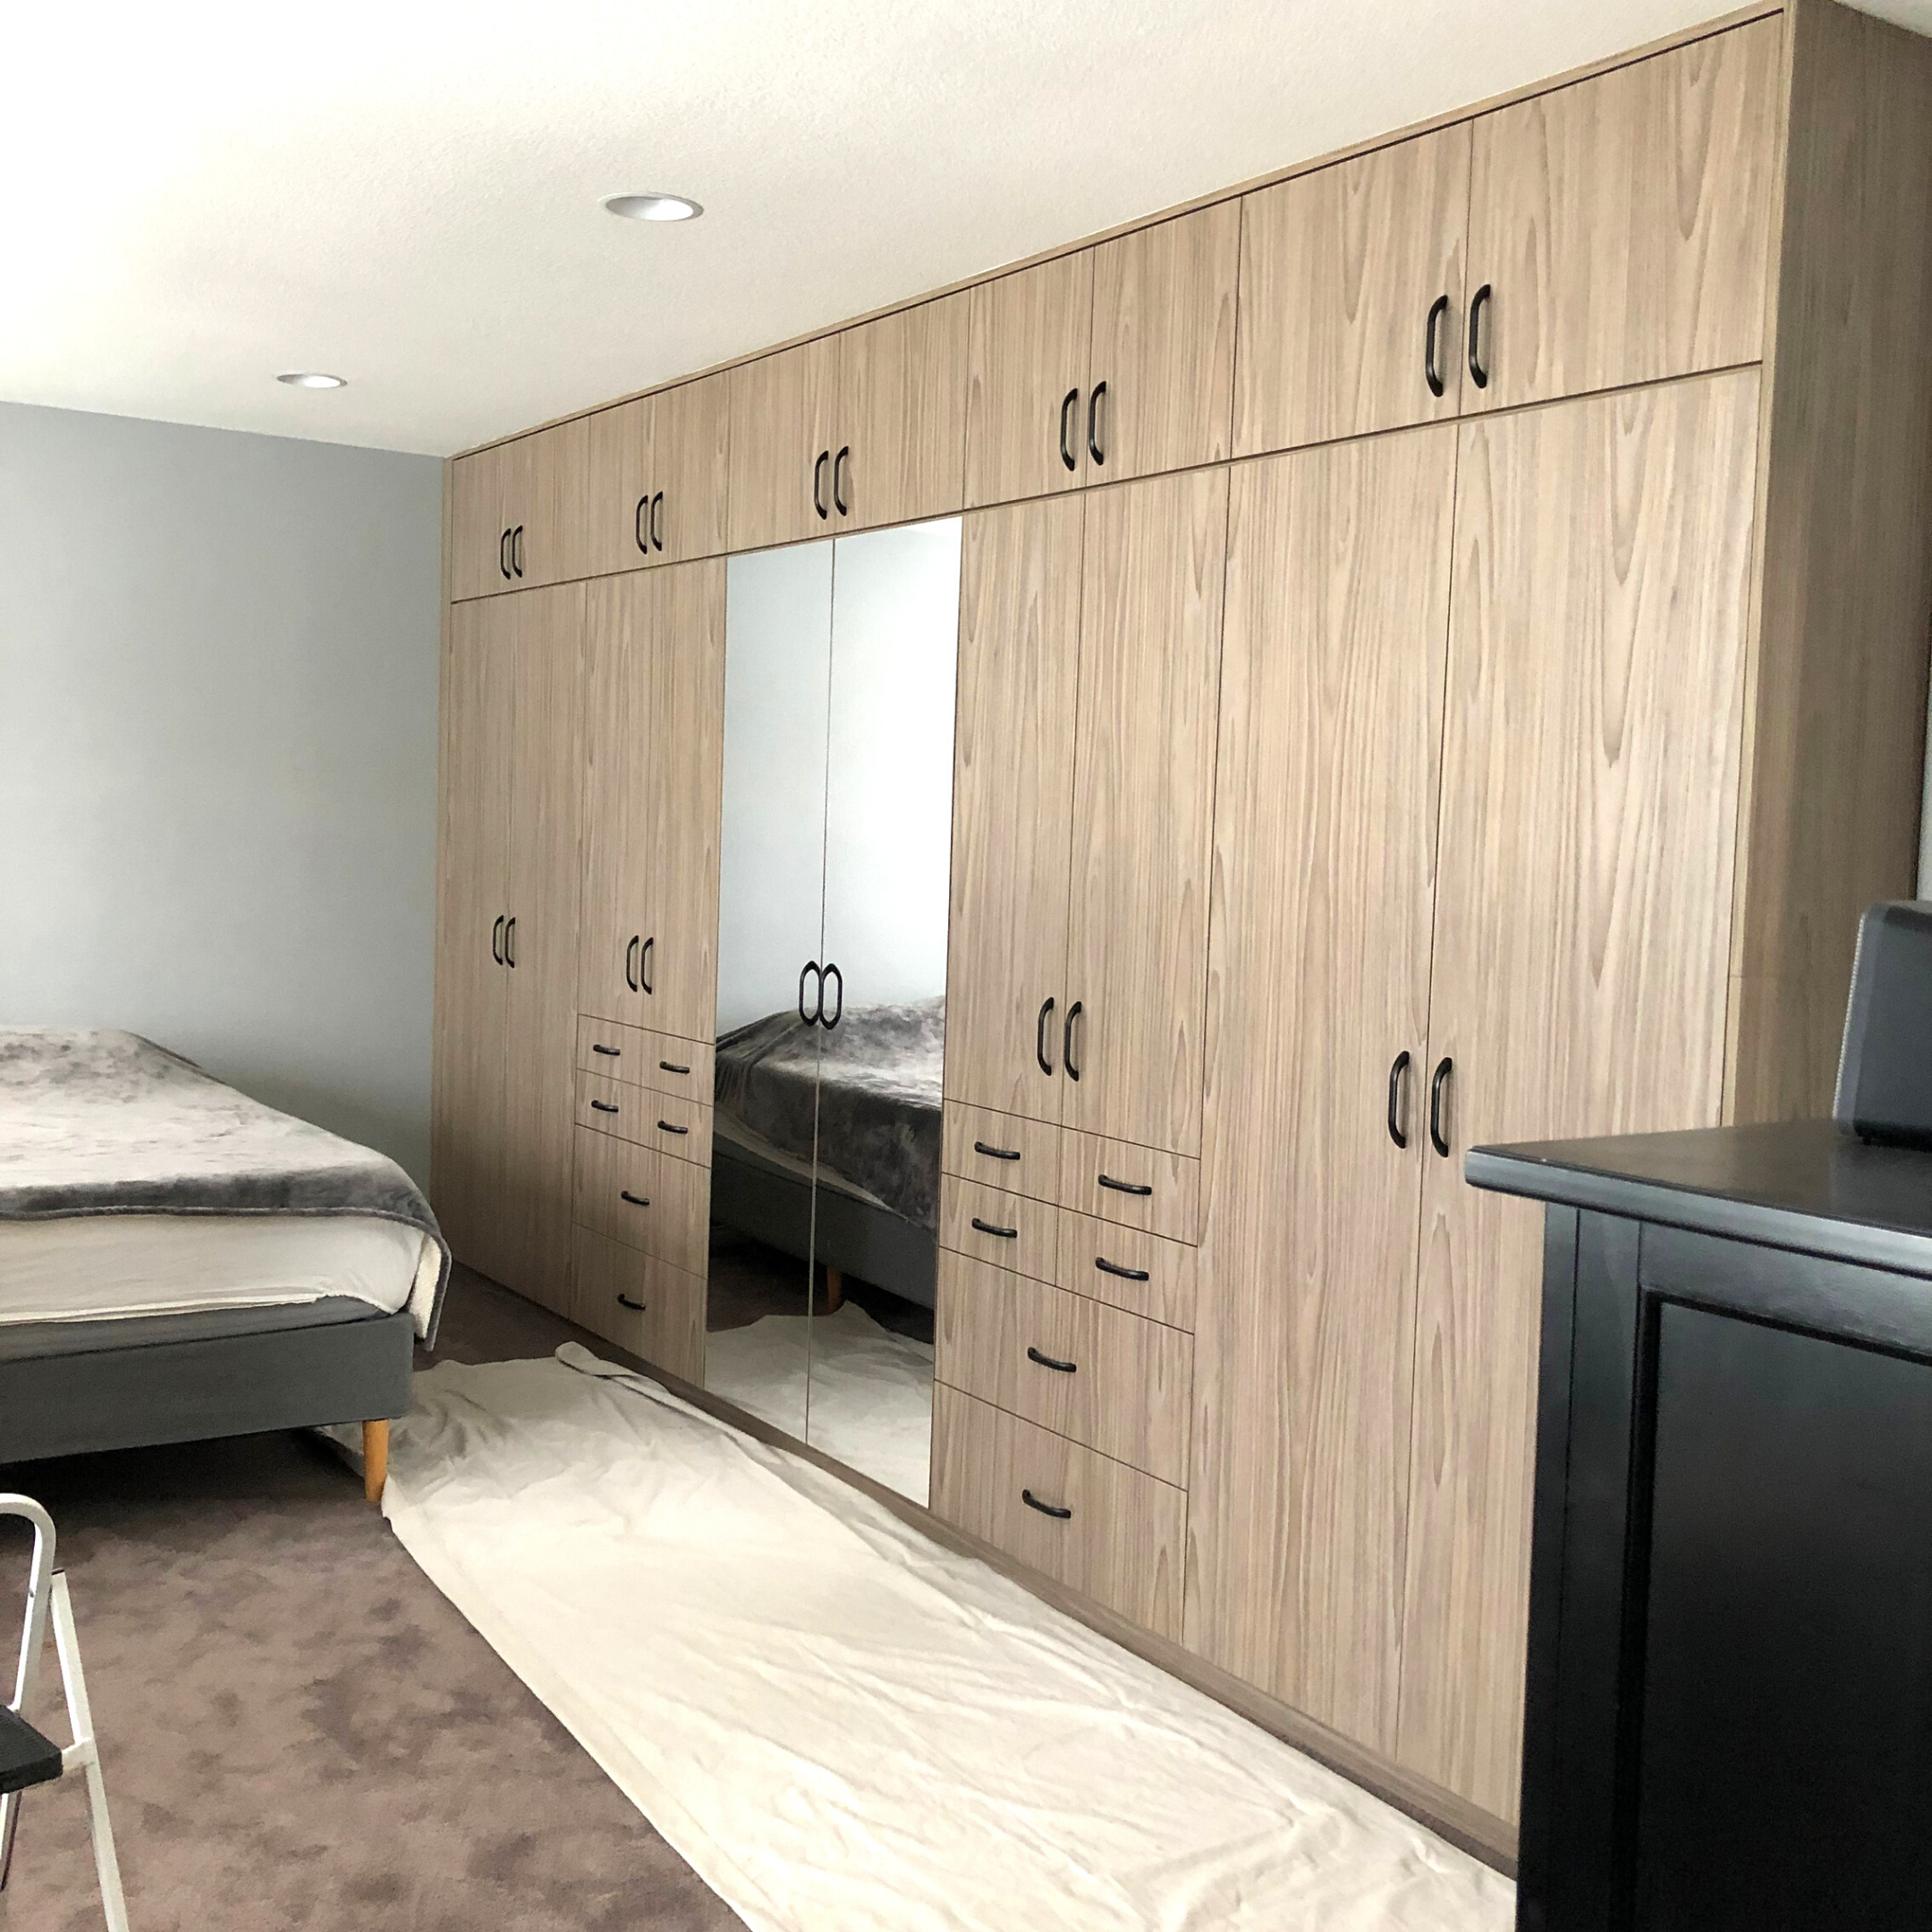 We love this #classycloset design! At Classy Closets, your satisfaction and happiness with your new closet space is our main concern! @classyclosetssd ⠀ ⠀ #flippinghouses #homedesignideas #customcloset #customhomes #modernhomes #renovation #rehab #inspiration #dreamhouse #interiordesign